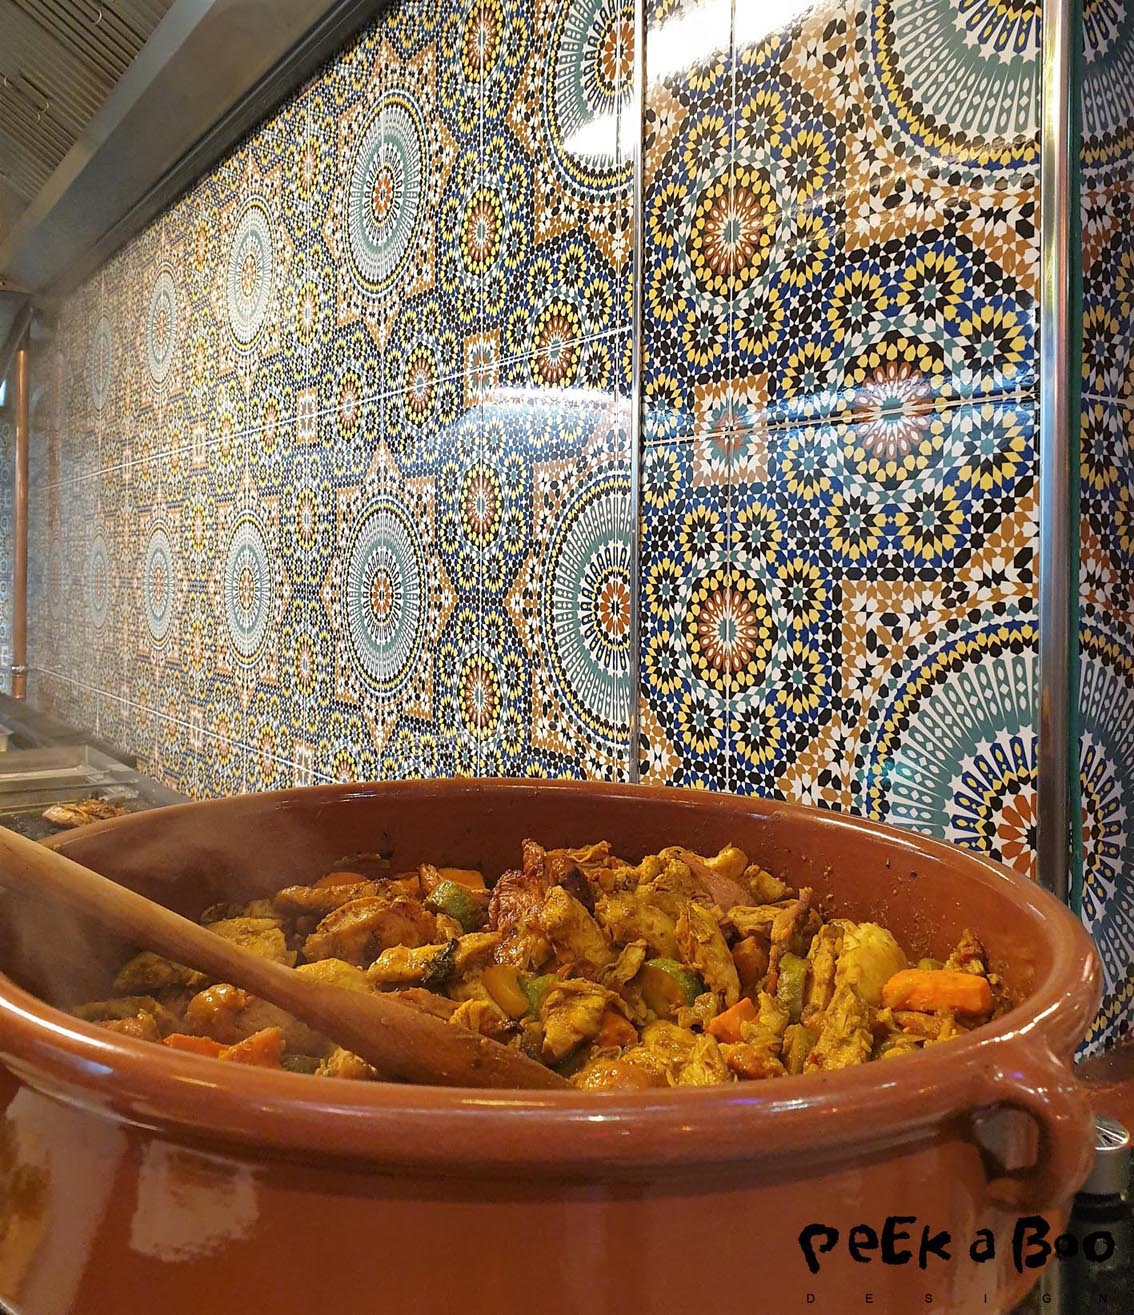 In the kitchen Marrakech, you get delicious marrocan food here.In the kitchen Marrakech, you get delicious marrocan food here.